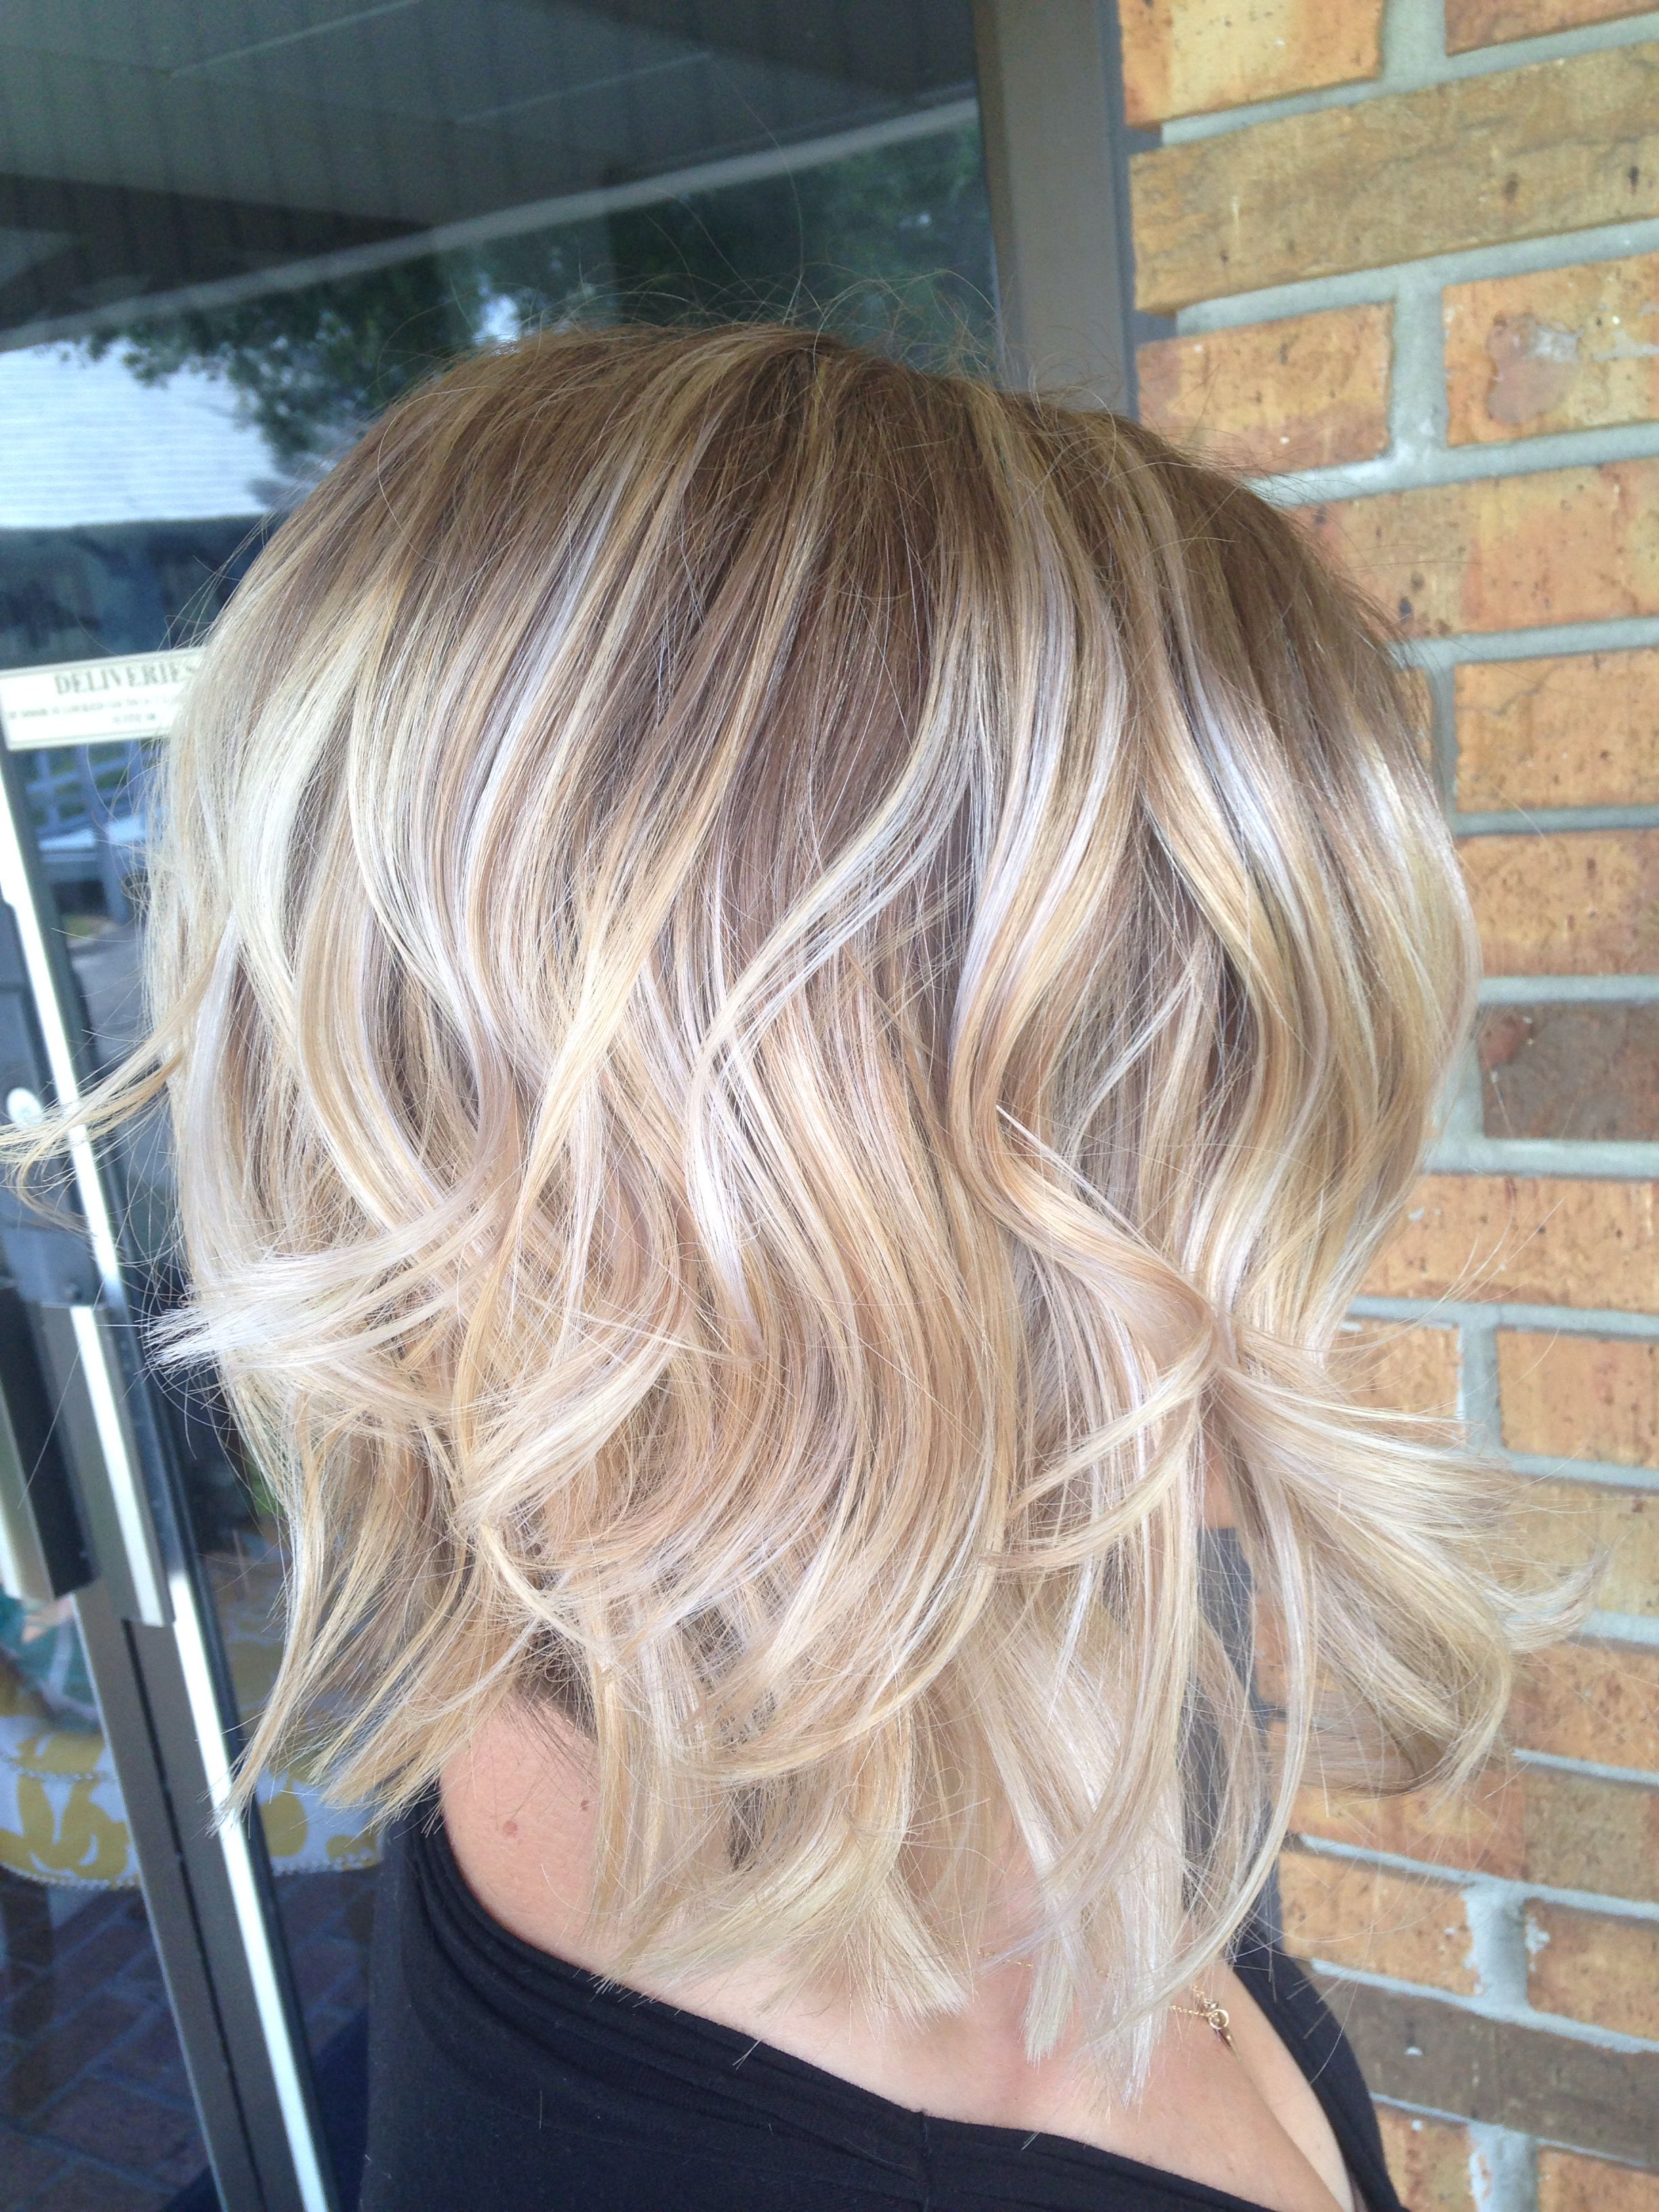 Nice light blonde highlights on brown delicate regrowth hair